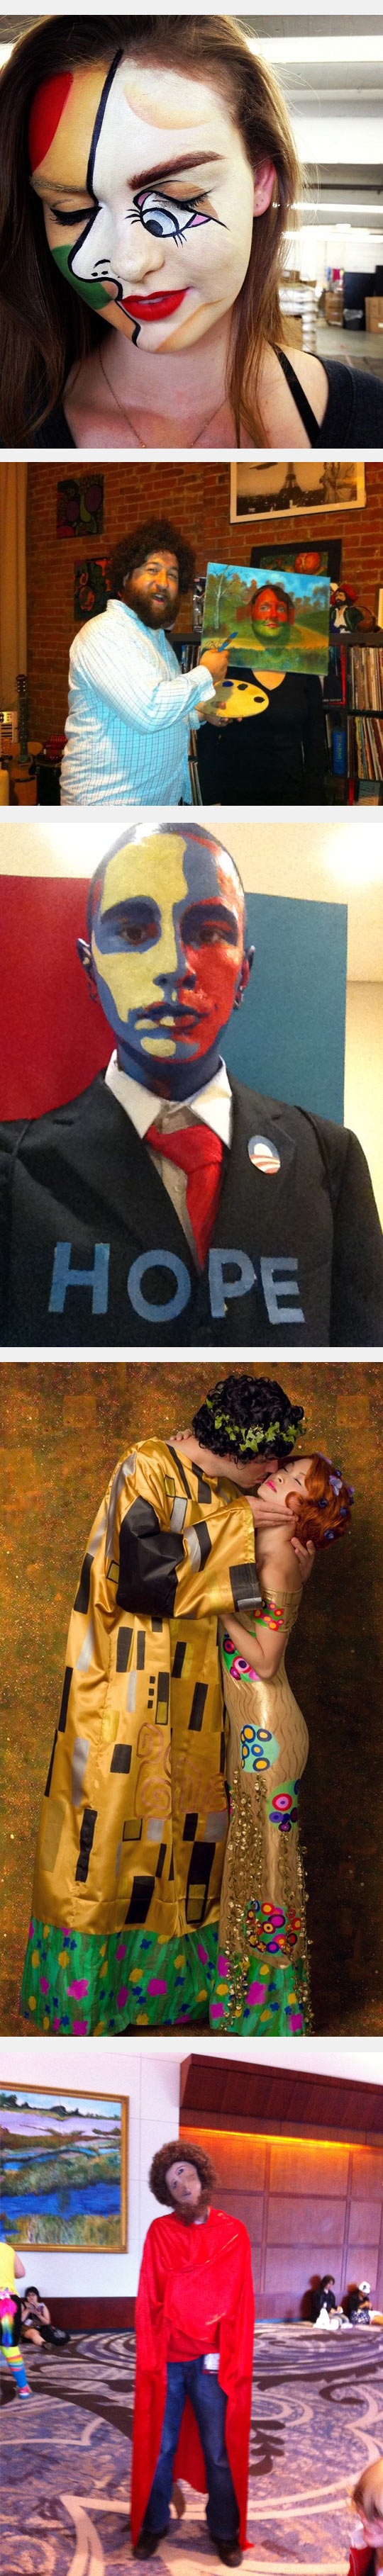 funny-art-cosplay-painting-Van-Gogh-Obama